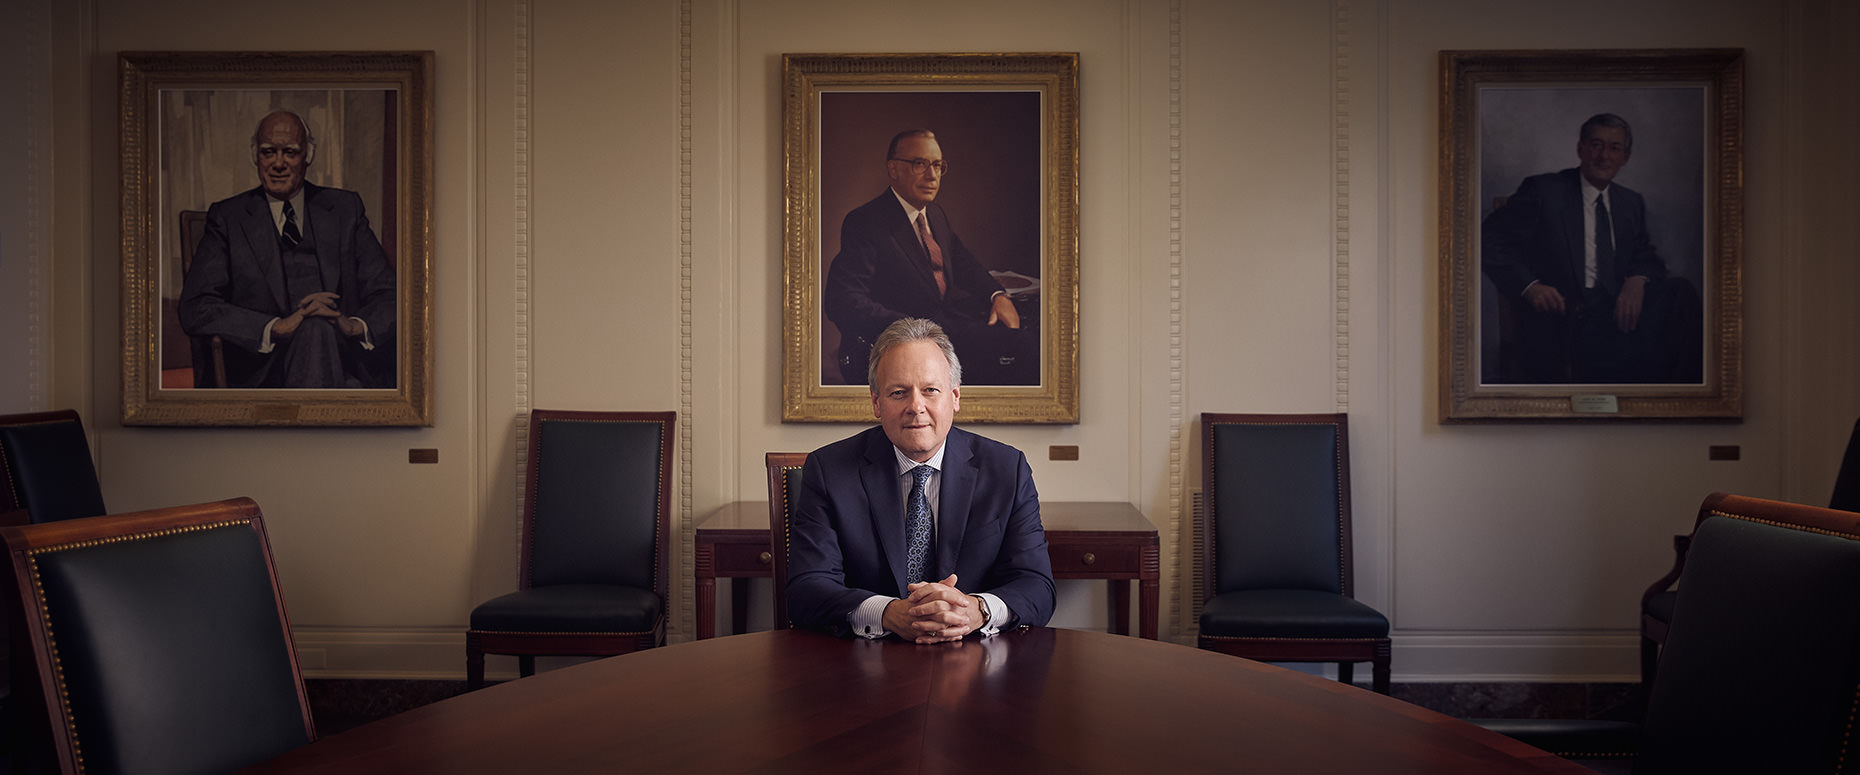 Ottawa corporate photographer &  portrait photographer Matthew Liteplo captured this editorial portrait of the Governor of the Bank of Canada Steven Poloz for Central Banking Magazine in November of 2019.   This strong portait of a Canadian Government Official shots creates a strong narrative between Steve and his predecessors.